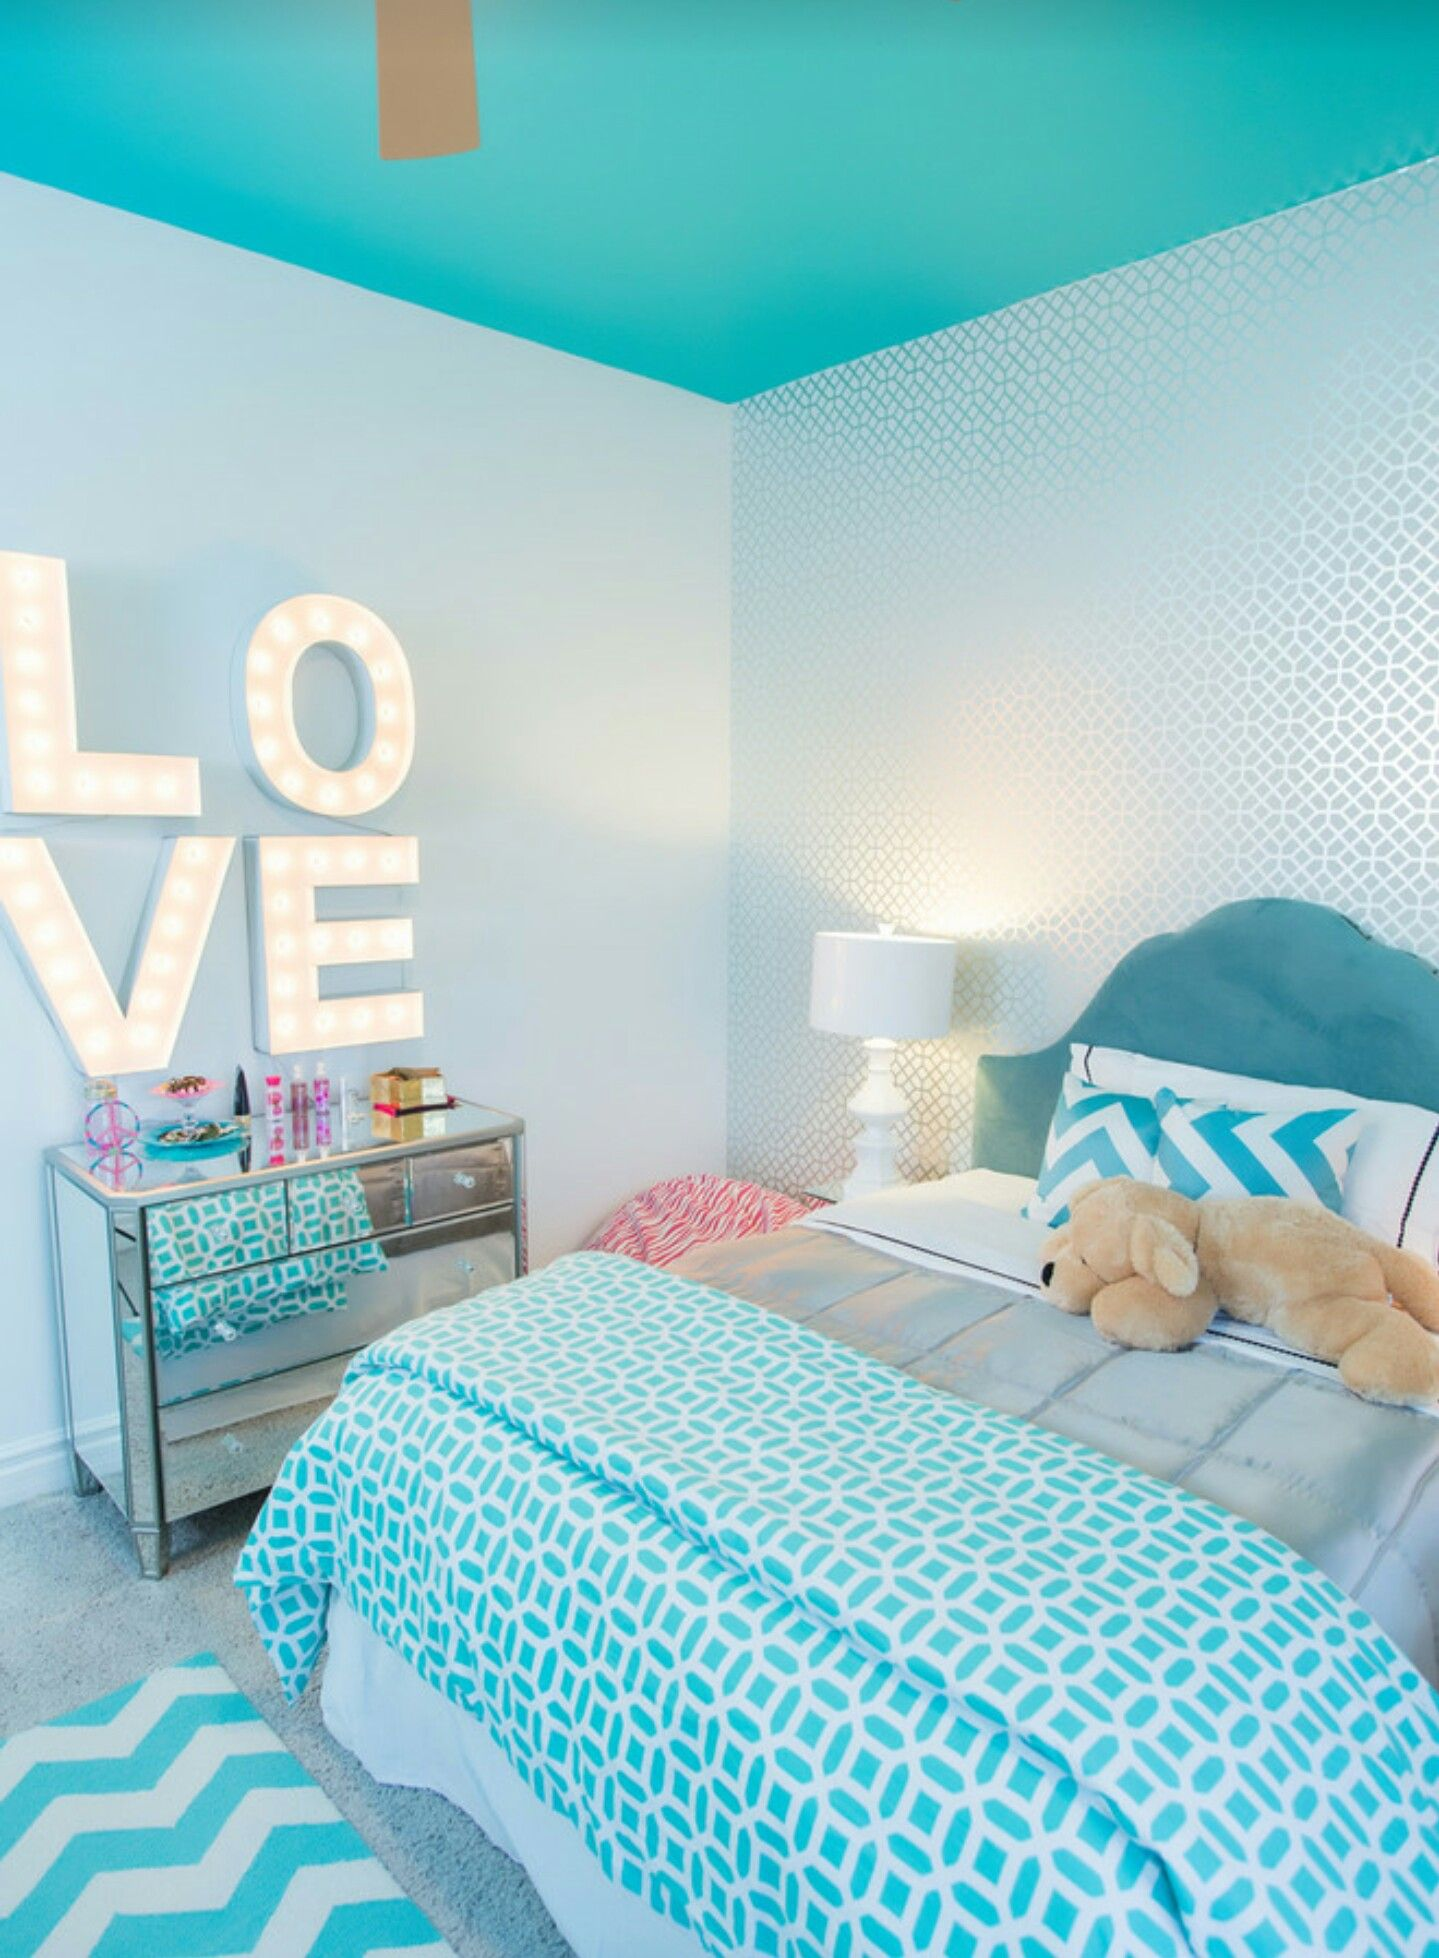 Love Y La Cajonera Gala1 Pinterest Turquoise Bedrooms Turquoise Living Rooms And Room Ideas